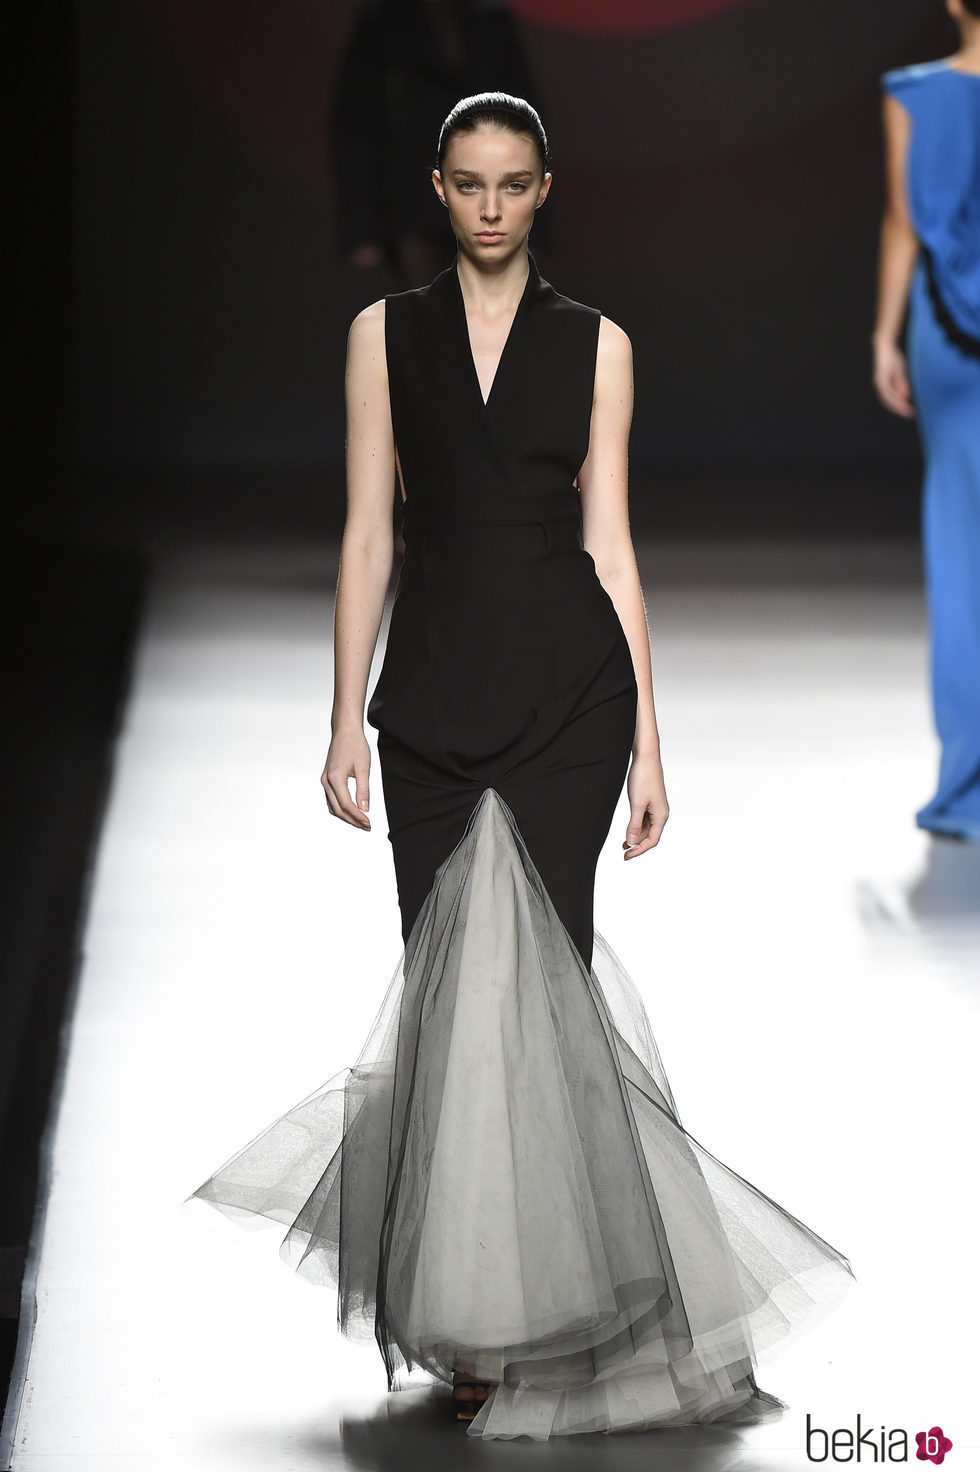 Vestido largo de color negro con volumen en la parte inferior de Amaya Arzuaga primavera/verano 2017 Madrid Fashion Week